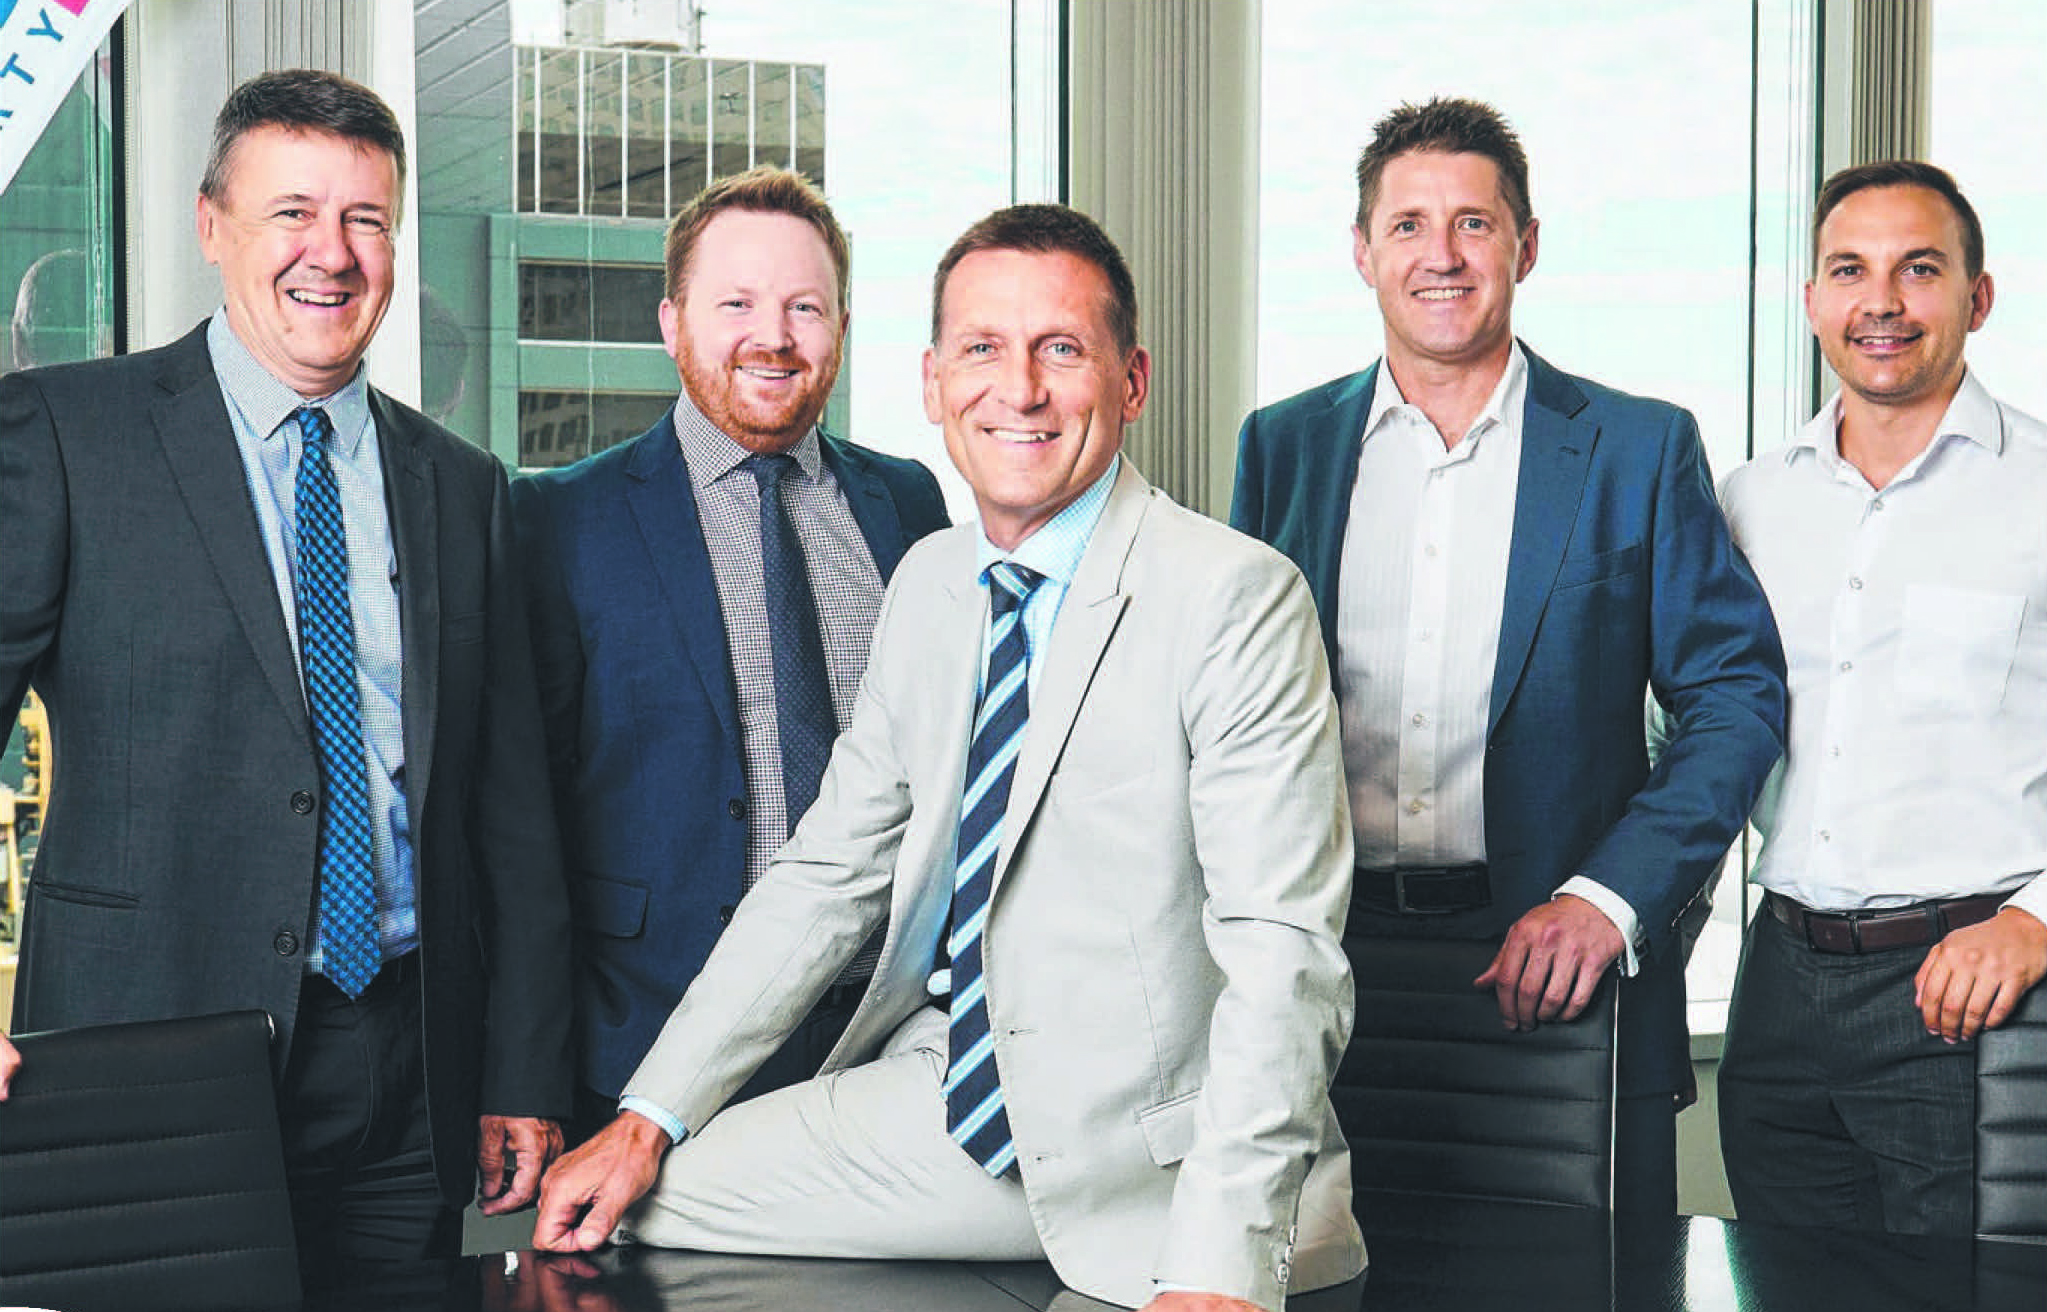 Renowned local property agency McGees Property is continuing its growth trajectory through a merge with retail leasing and sales specialist Intrepid Property.